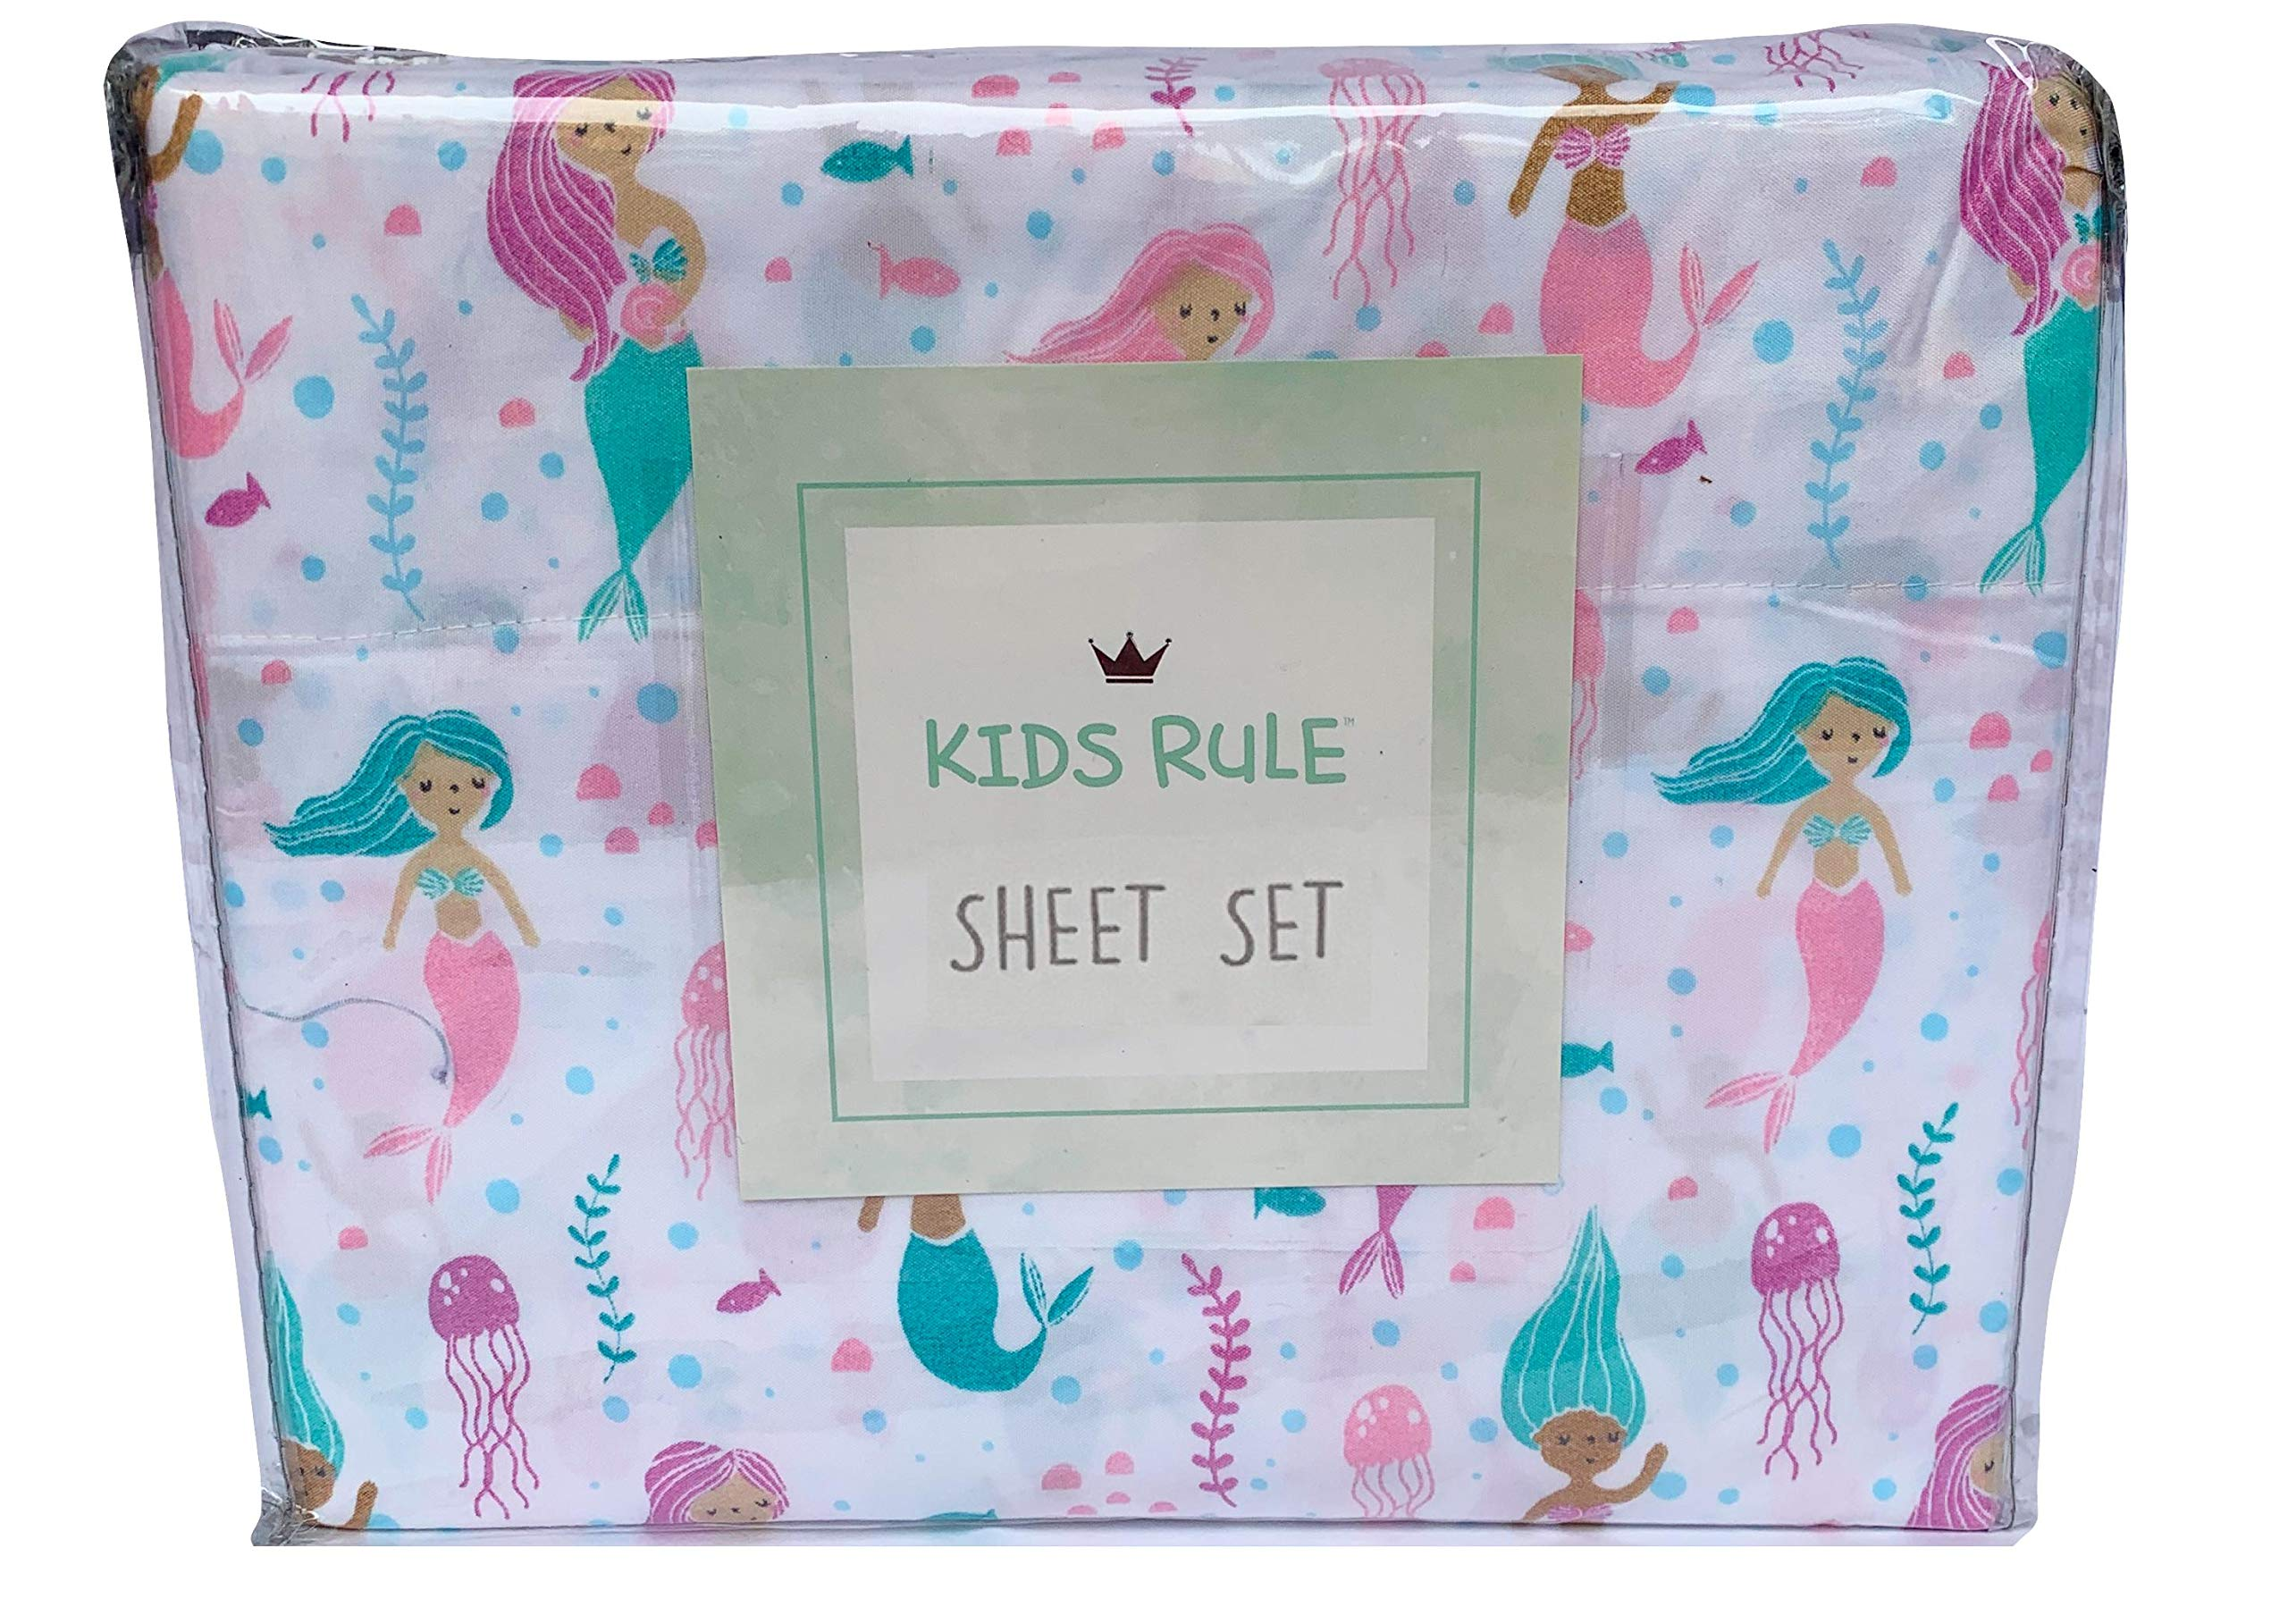 Kids Rule Microfiber Sheet Sets for Kids in Sweet Mermaid Print Purple, Aqua, Teal, White - Twin and Full Size (Twin)